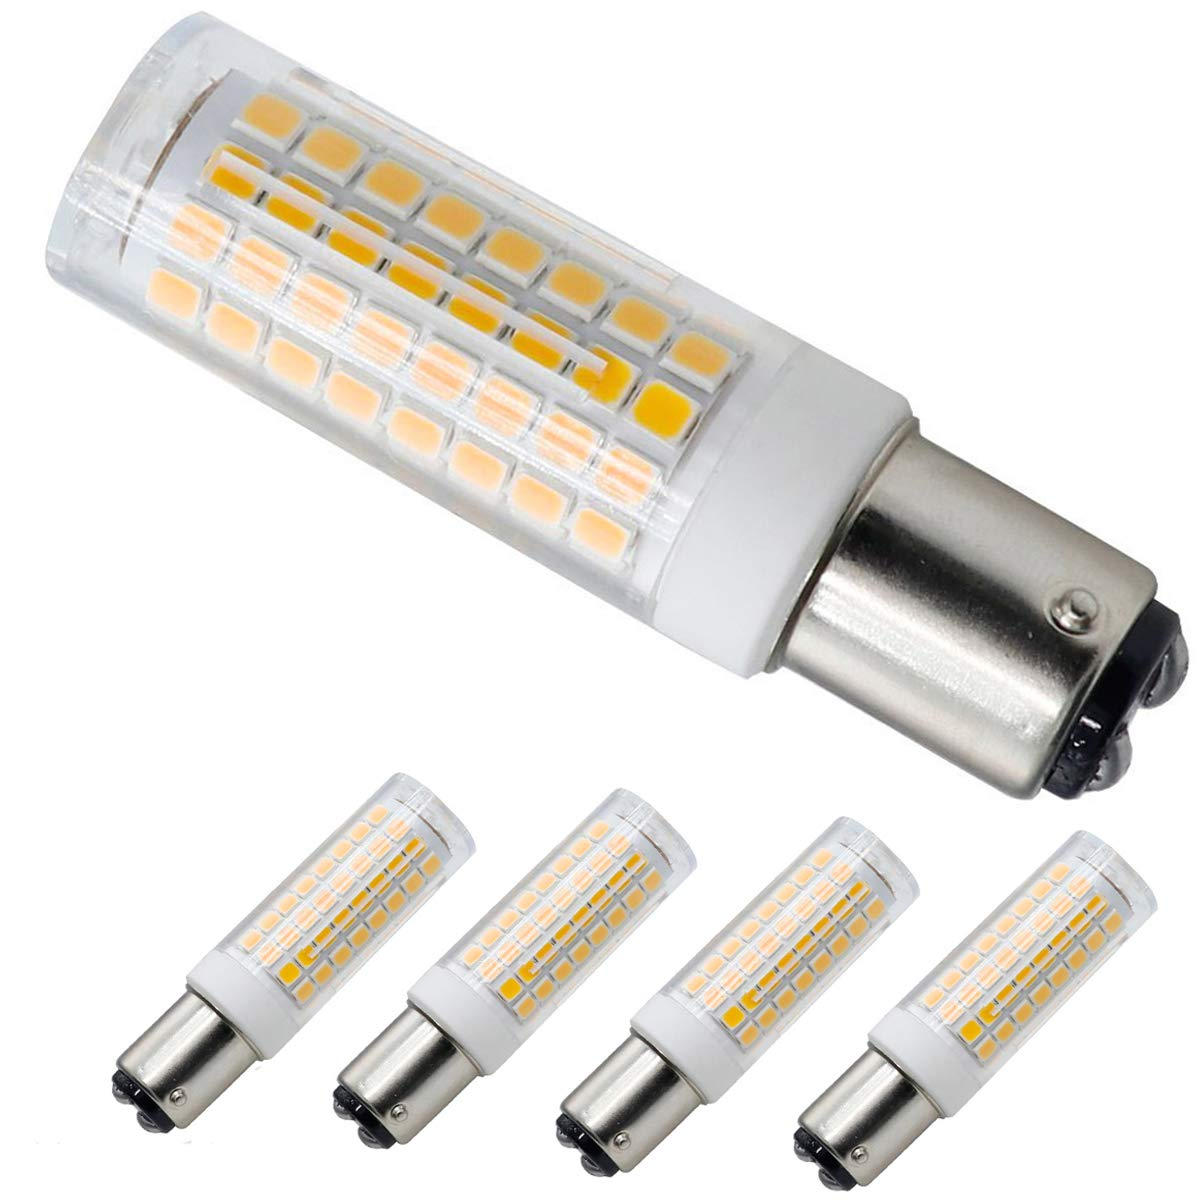 XRZT BA15D 120V LED Bulbs, Dimmable Double Contact Bayonet Base, Warm White 3000K, T3/T4,7W 75W Halogen Bulbs Equivalent for Sewing Machine Lamp(4-pack)